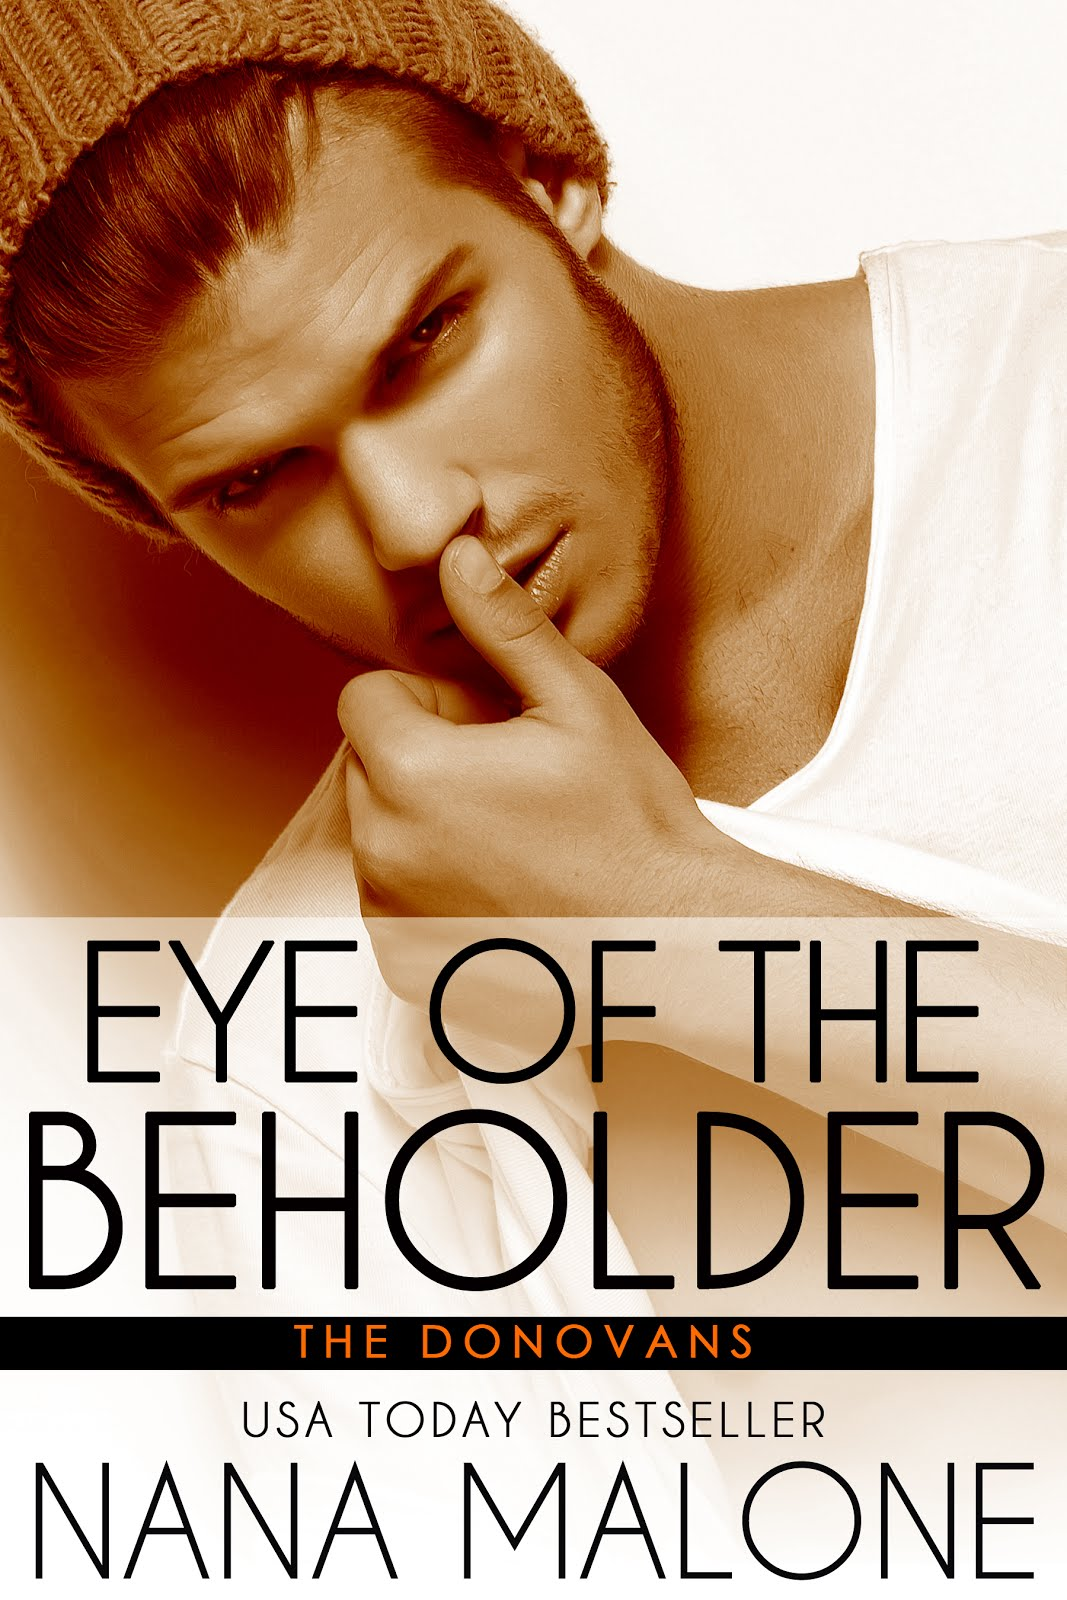 Eye of the Beholder by Nana Malone